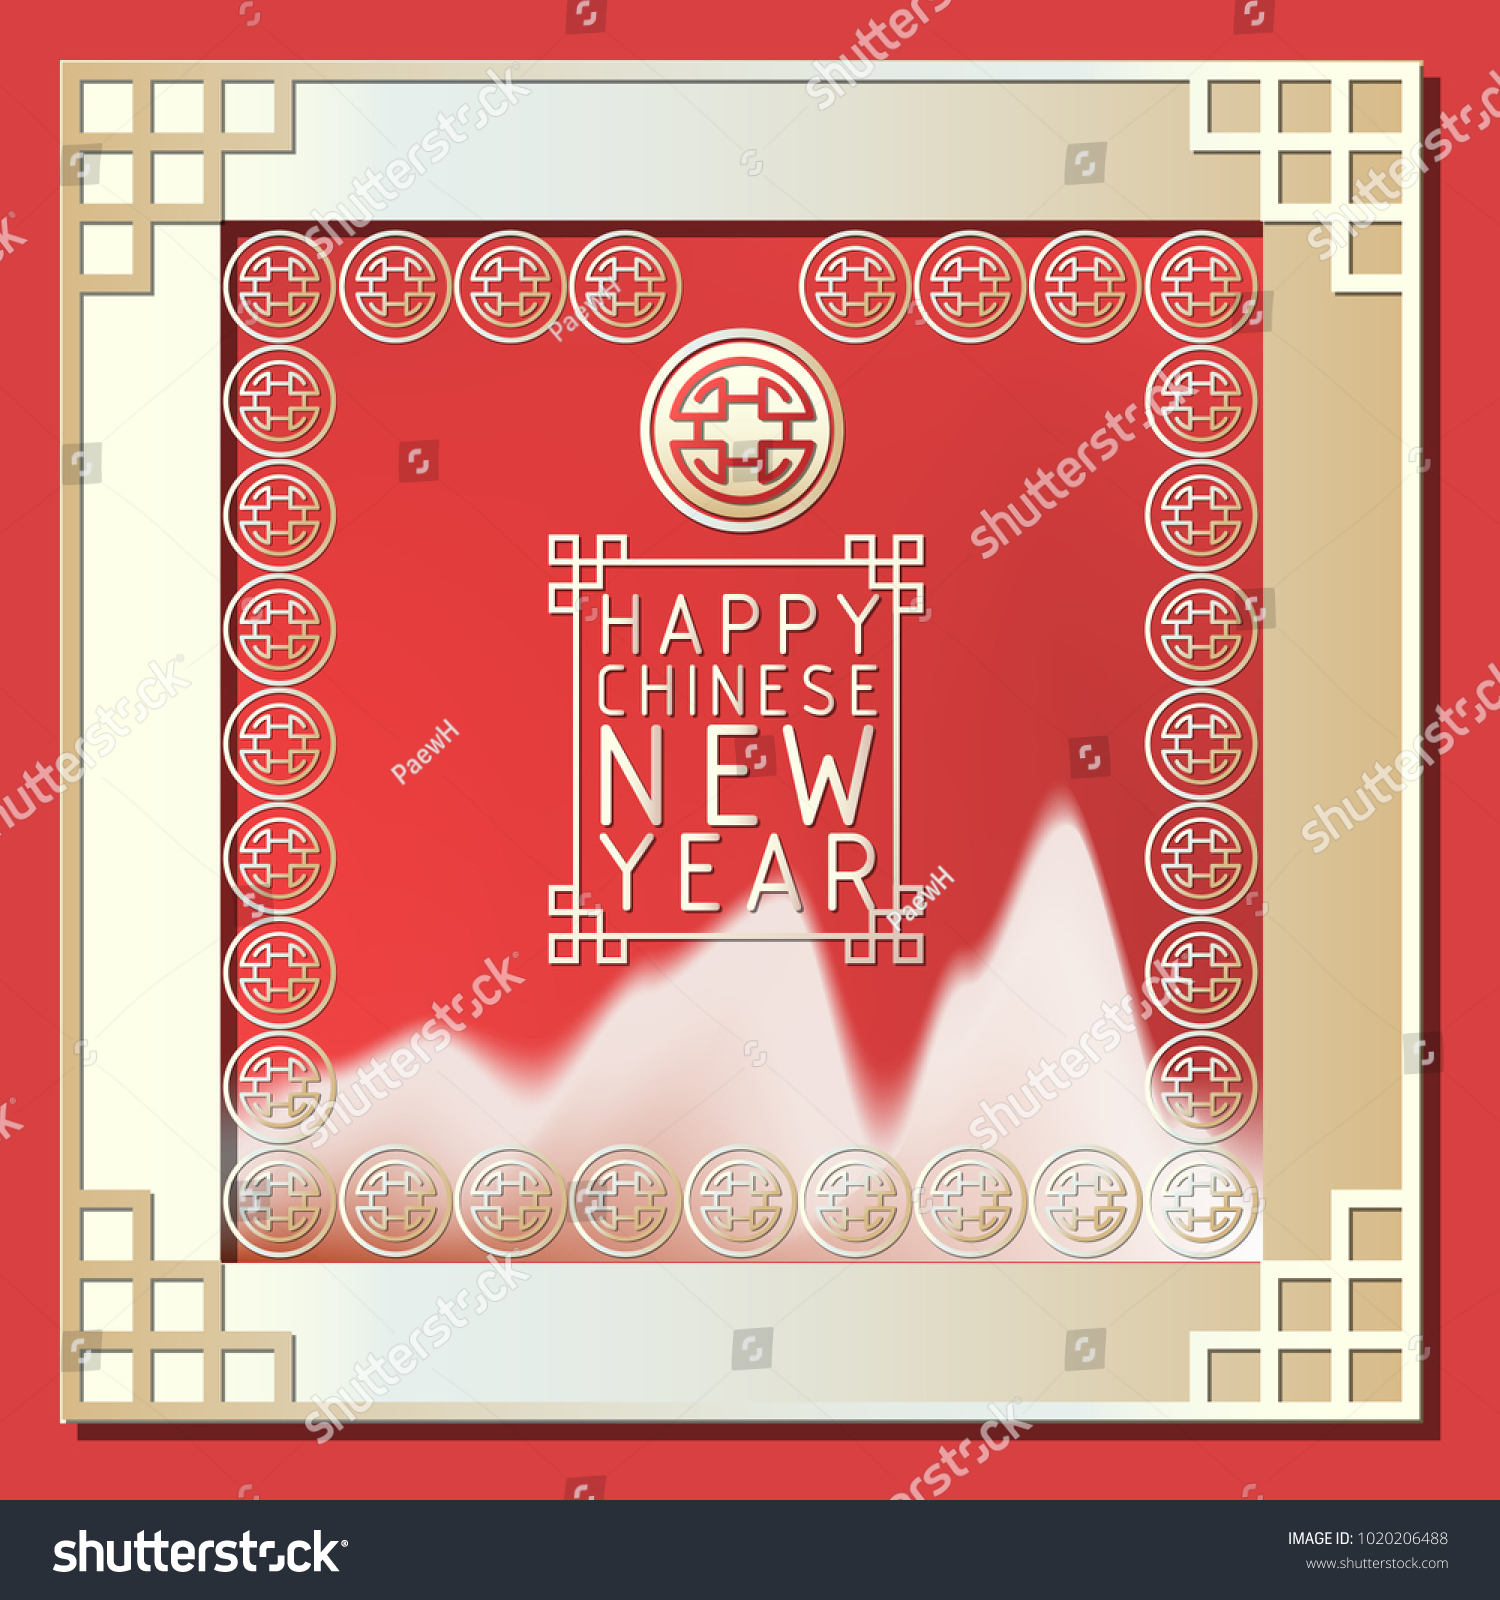 happy chinese new yearvector illustration for invitation or greeting cardmodern and minimal